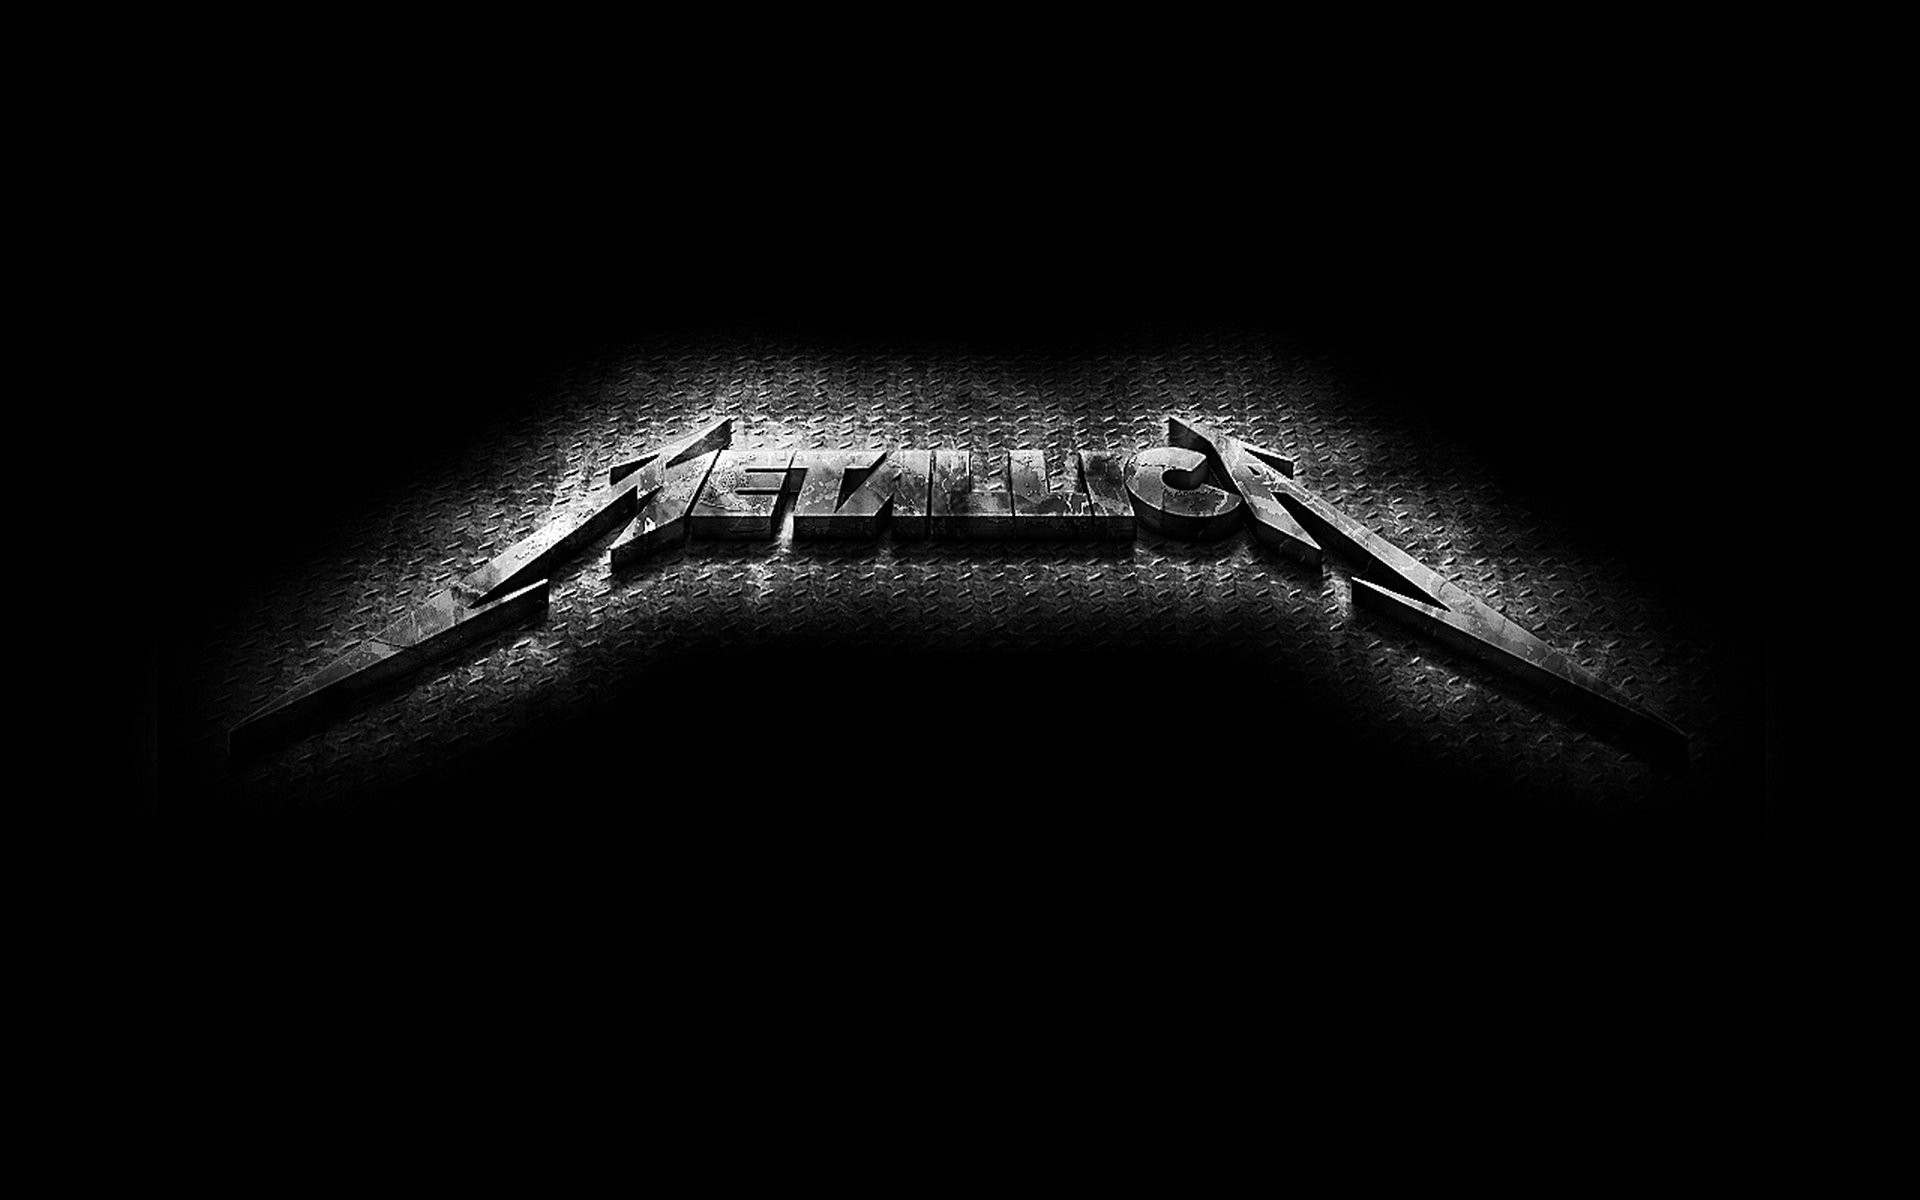 Metallica wallpaper ·① Download free awesome wallpapers for desktop ...